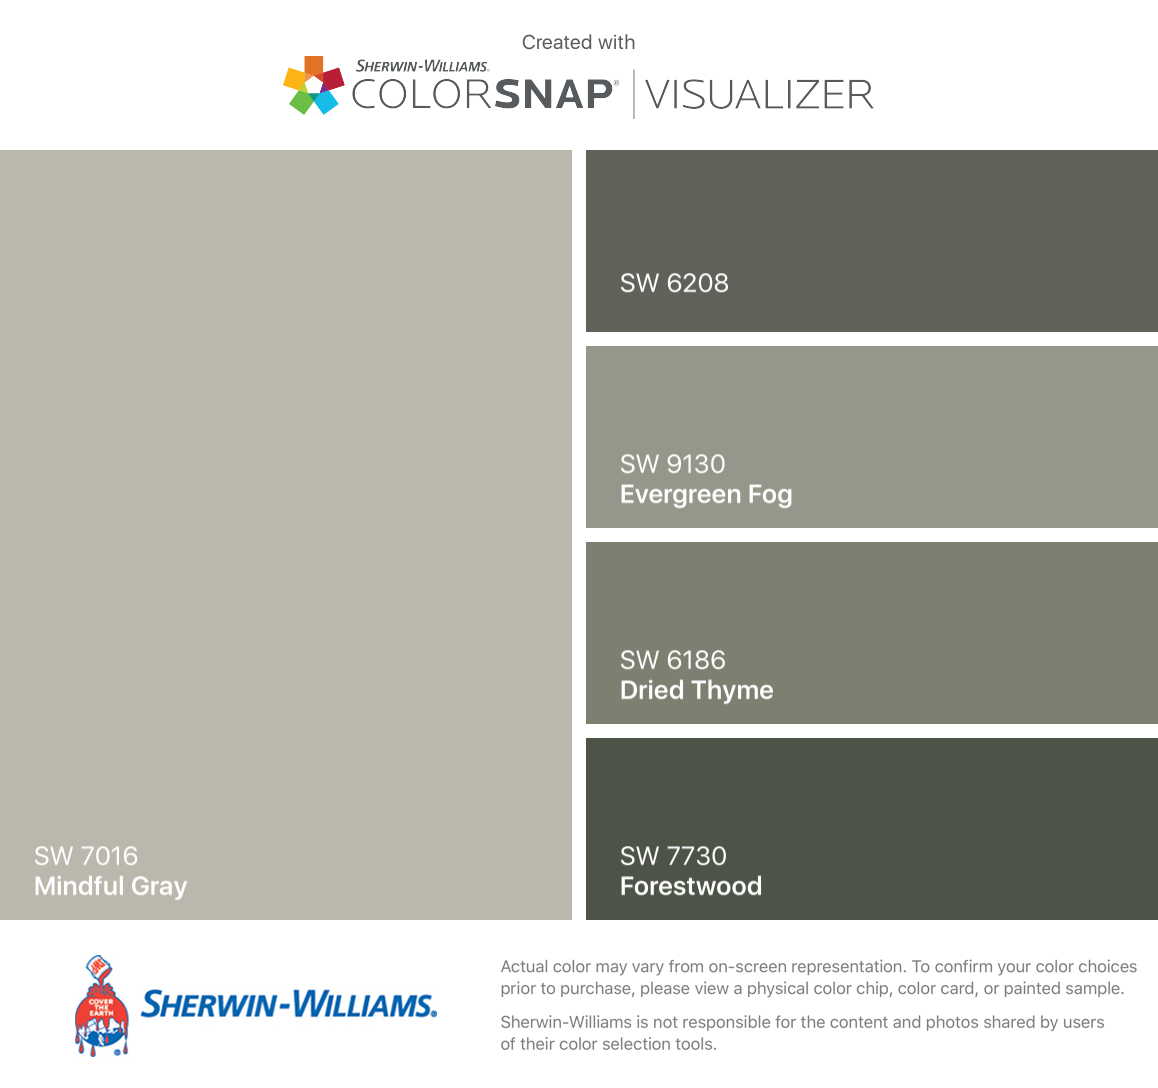 Sherwin williams popular greys - I Found These Colors With Colorsnap Visualizer For Iphone By Sherwin Williams Mindful